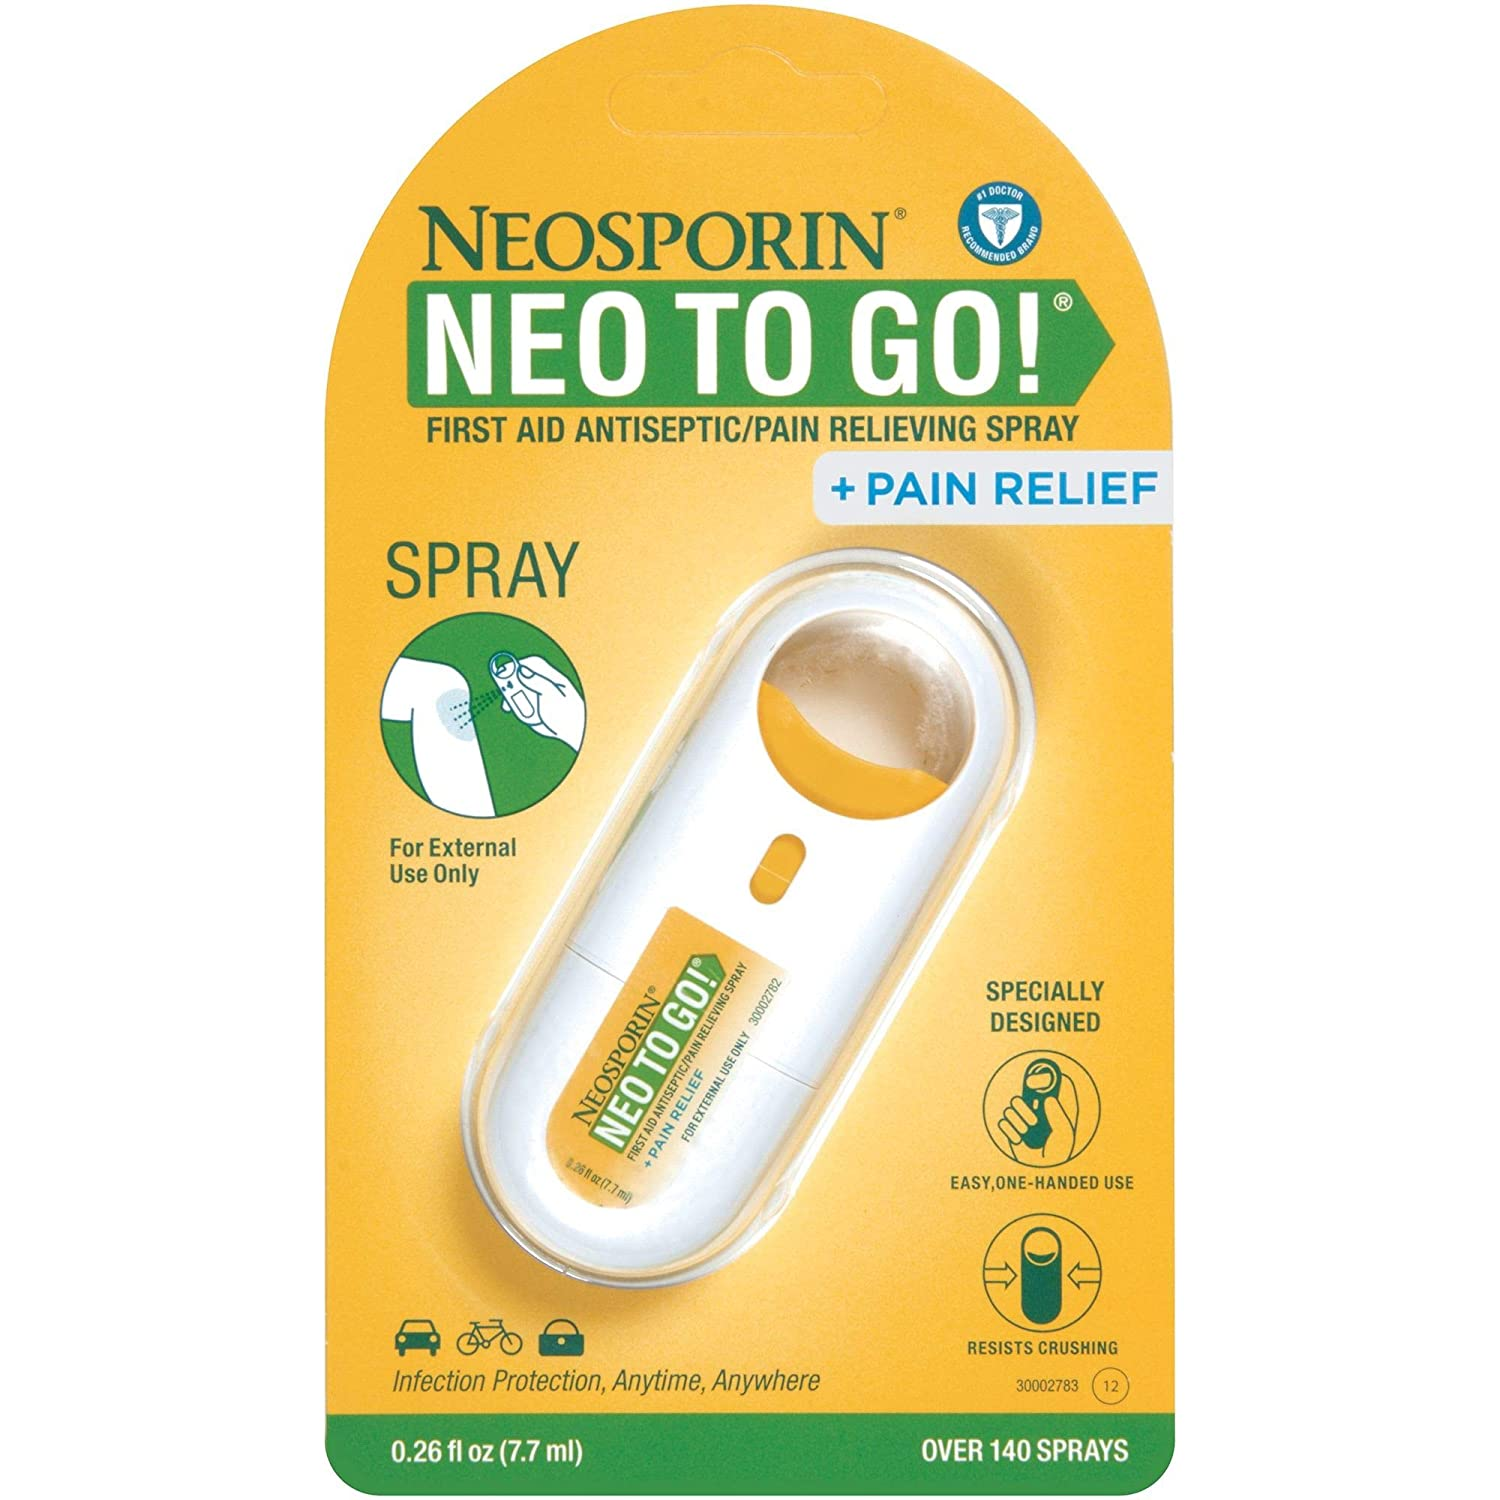 Neosporin + Pain Relief Neo to Go! First Aid Antiseptic/Pain Relieving  Spray 26 Oz